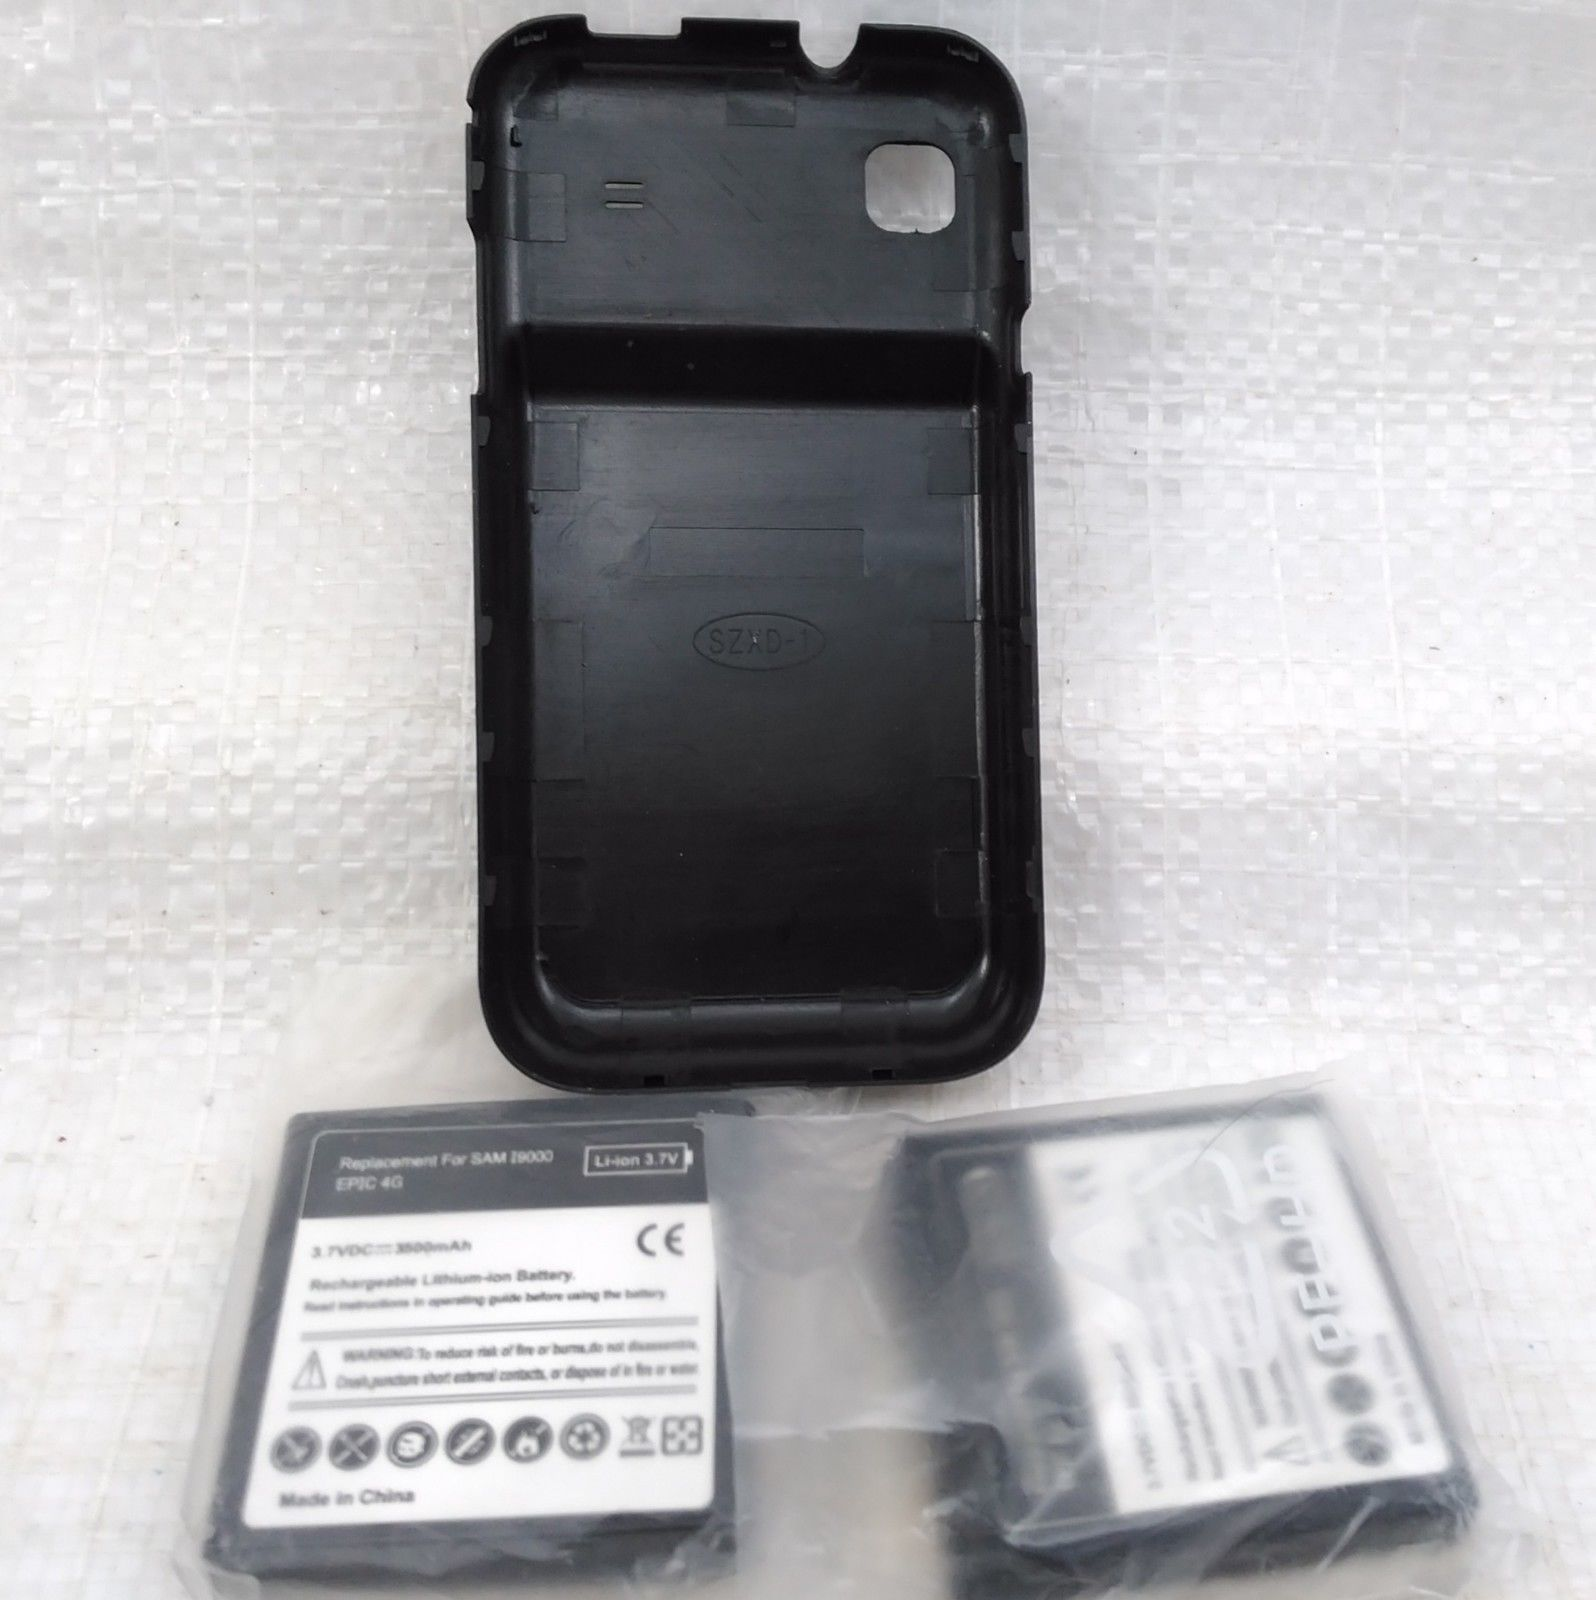 2 x 3500mAh Extended Batteries Sph D700 and Cover Samsung 19000 Galaxy S